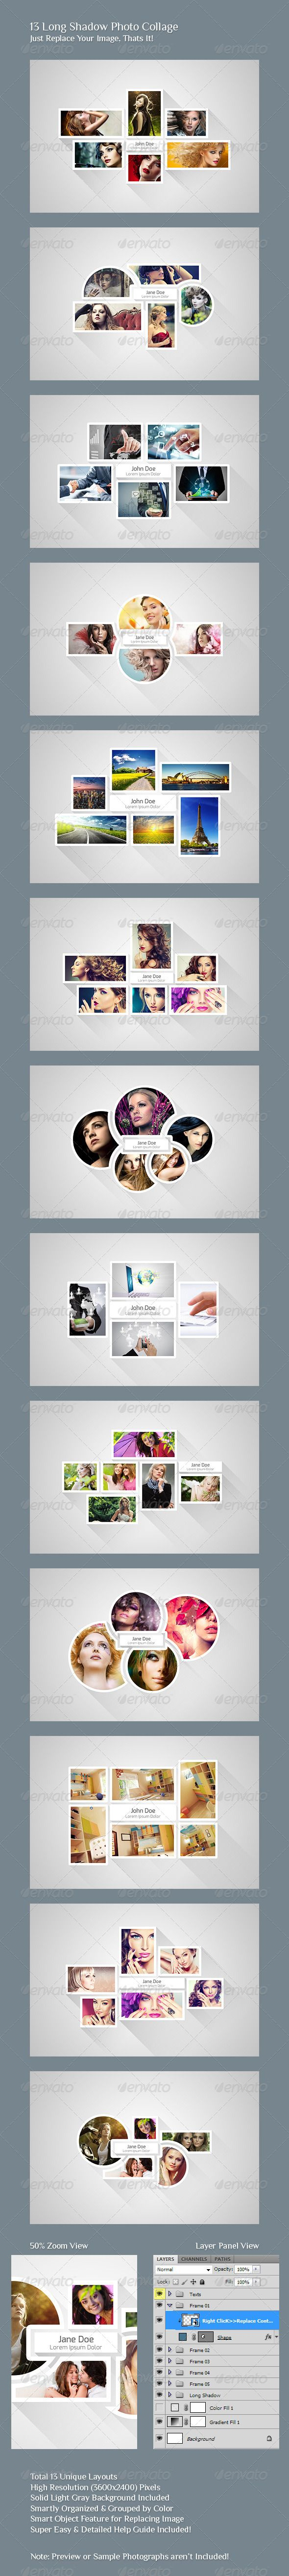 Famous 1 Year Experience Java Resume Format Thick 1 Year Experience Resume Format Free Download Solid 14 Year Old Resumes 17 Year Old Resume Template Young 2.25 Button Template Bright3 Main Types Of Resumes 25  Best Ideas About Photo Collage Template On Pinterest | Photo ..